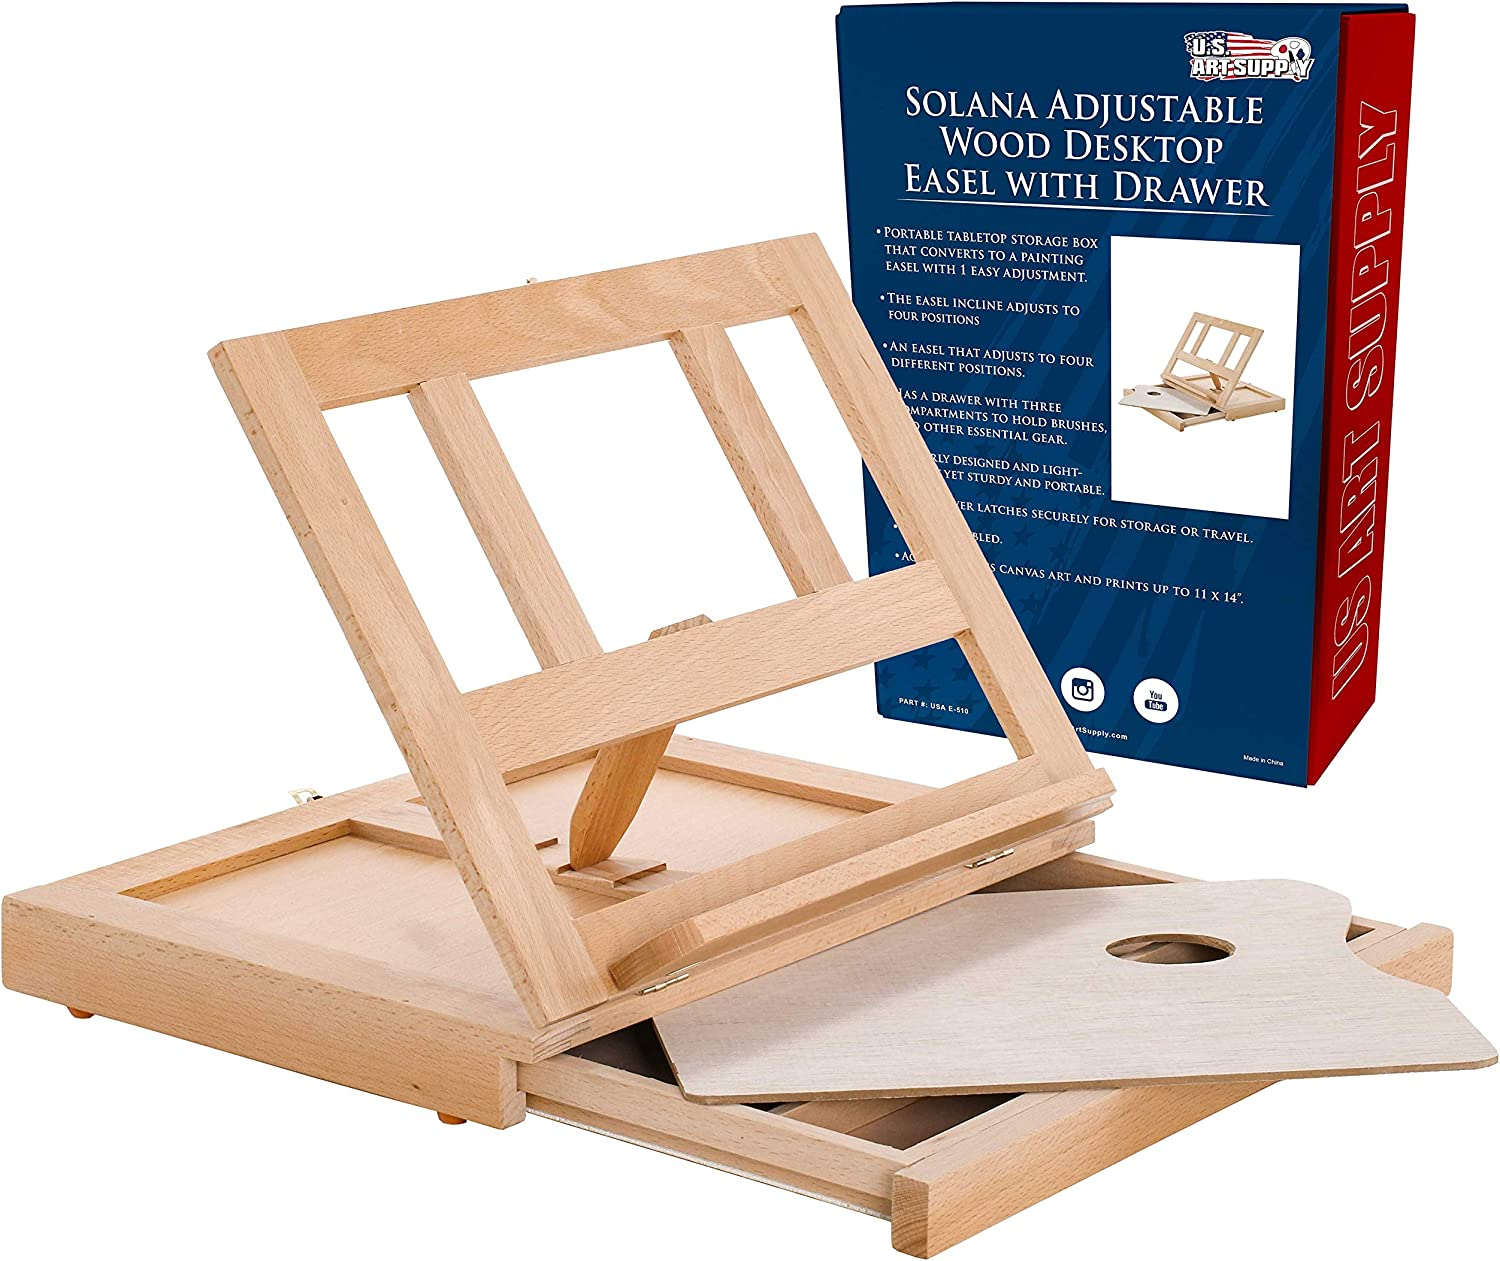 Suitable for Adults Sketching Adjustable Tabletop Easel Beech Wood Art Desktop Easel Portable Art Easel for Painting Children Drawing with Storage Drawer and 1 Paint Palette Beginners /& Artists